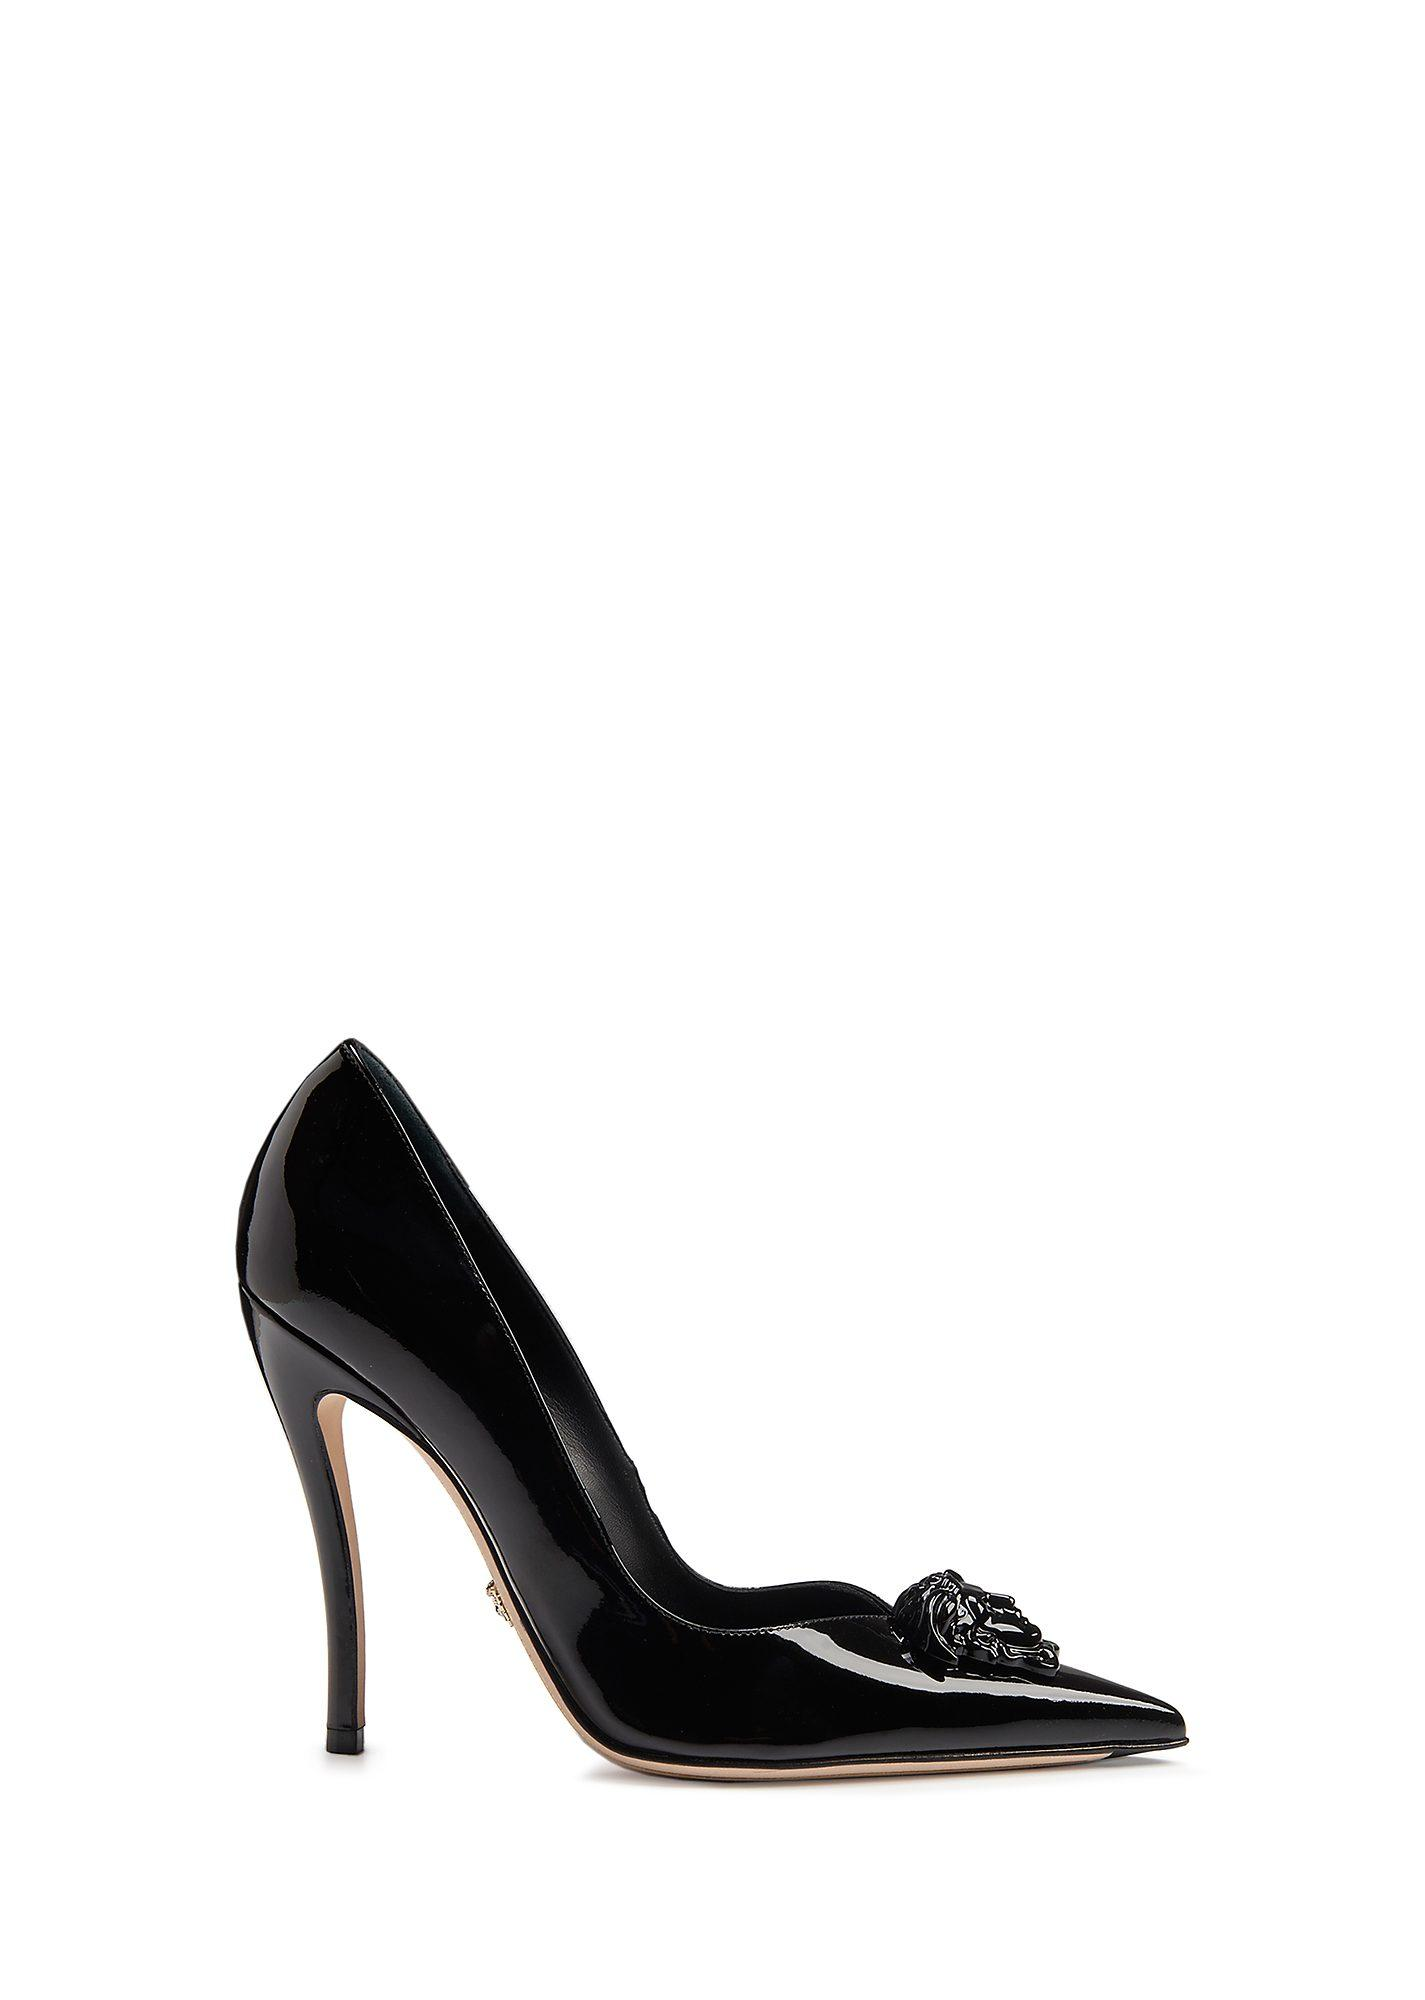 Versace Palazzo Patent Leather Pumps In Black